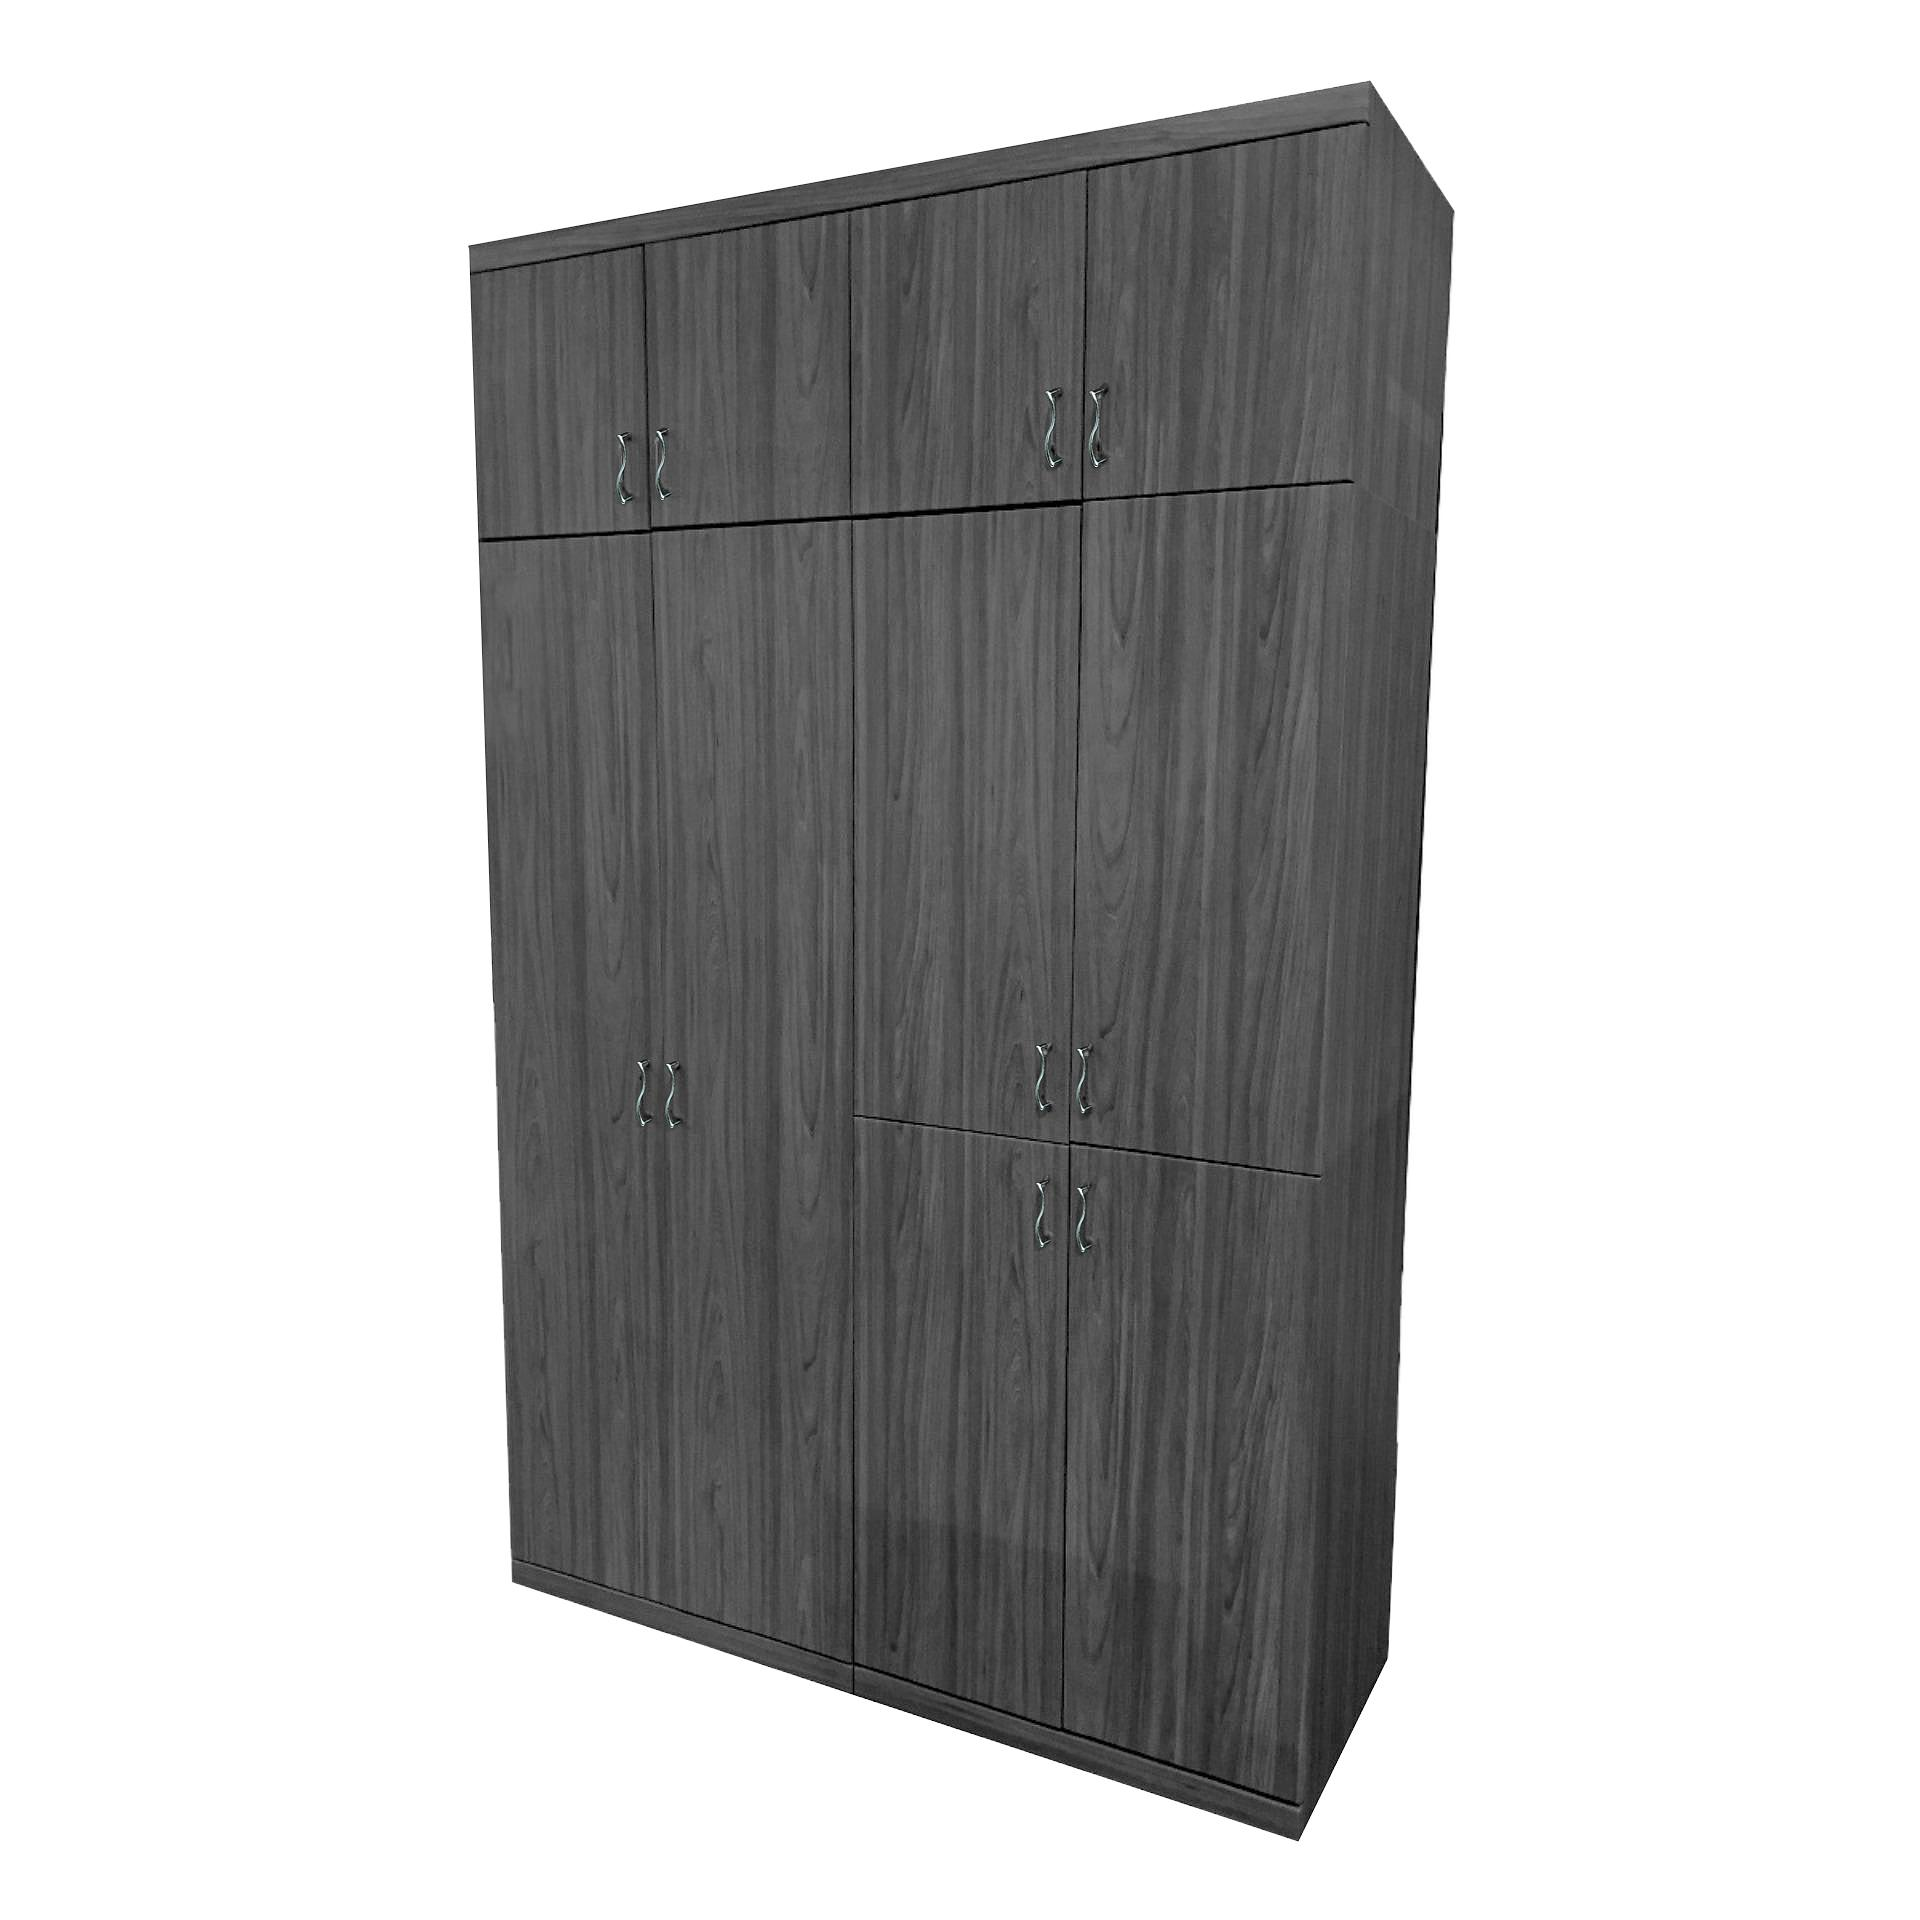 [A-STAR] Mason 10 Door Wardrobe Cabinet in Ash Grey (NEW!!)